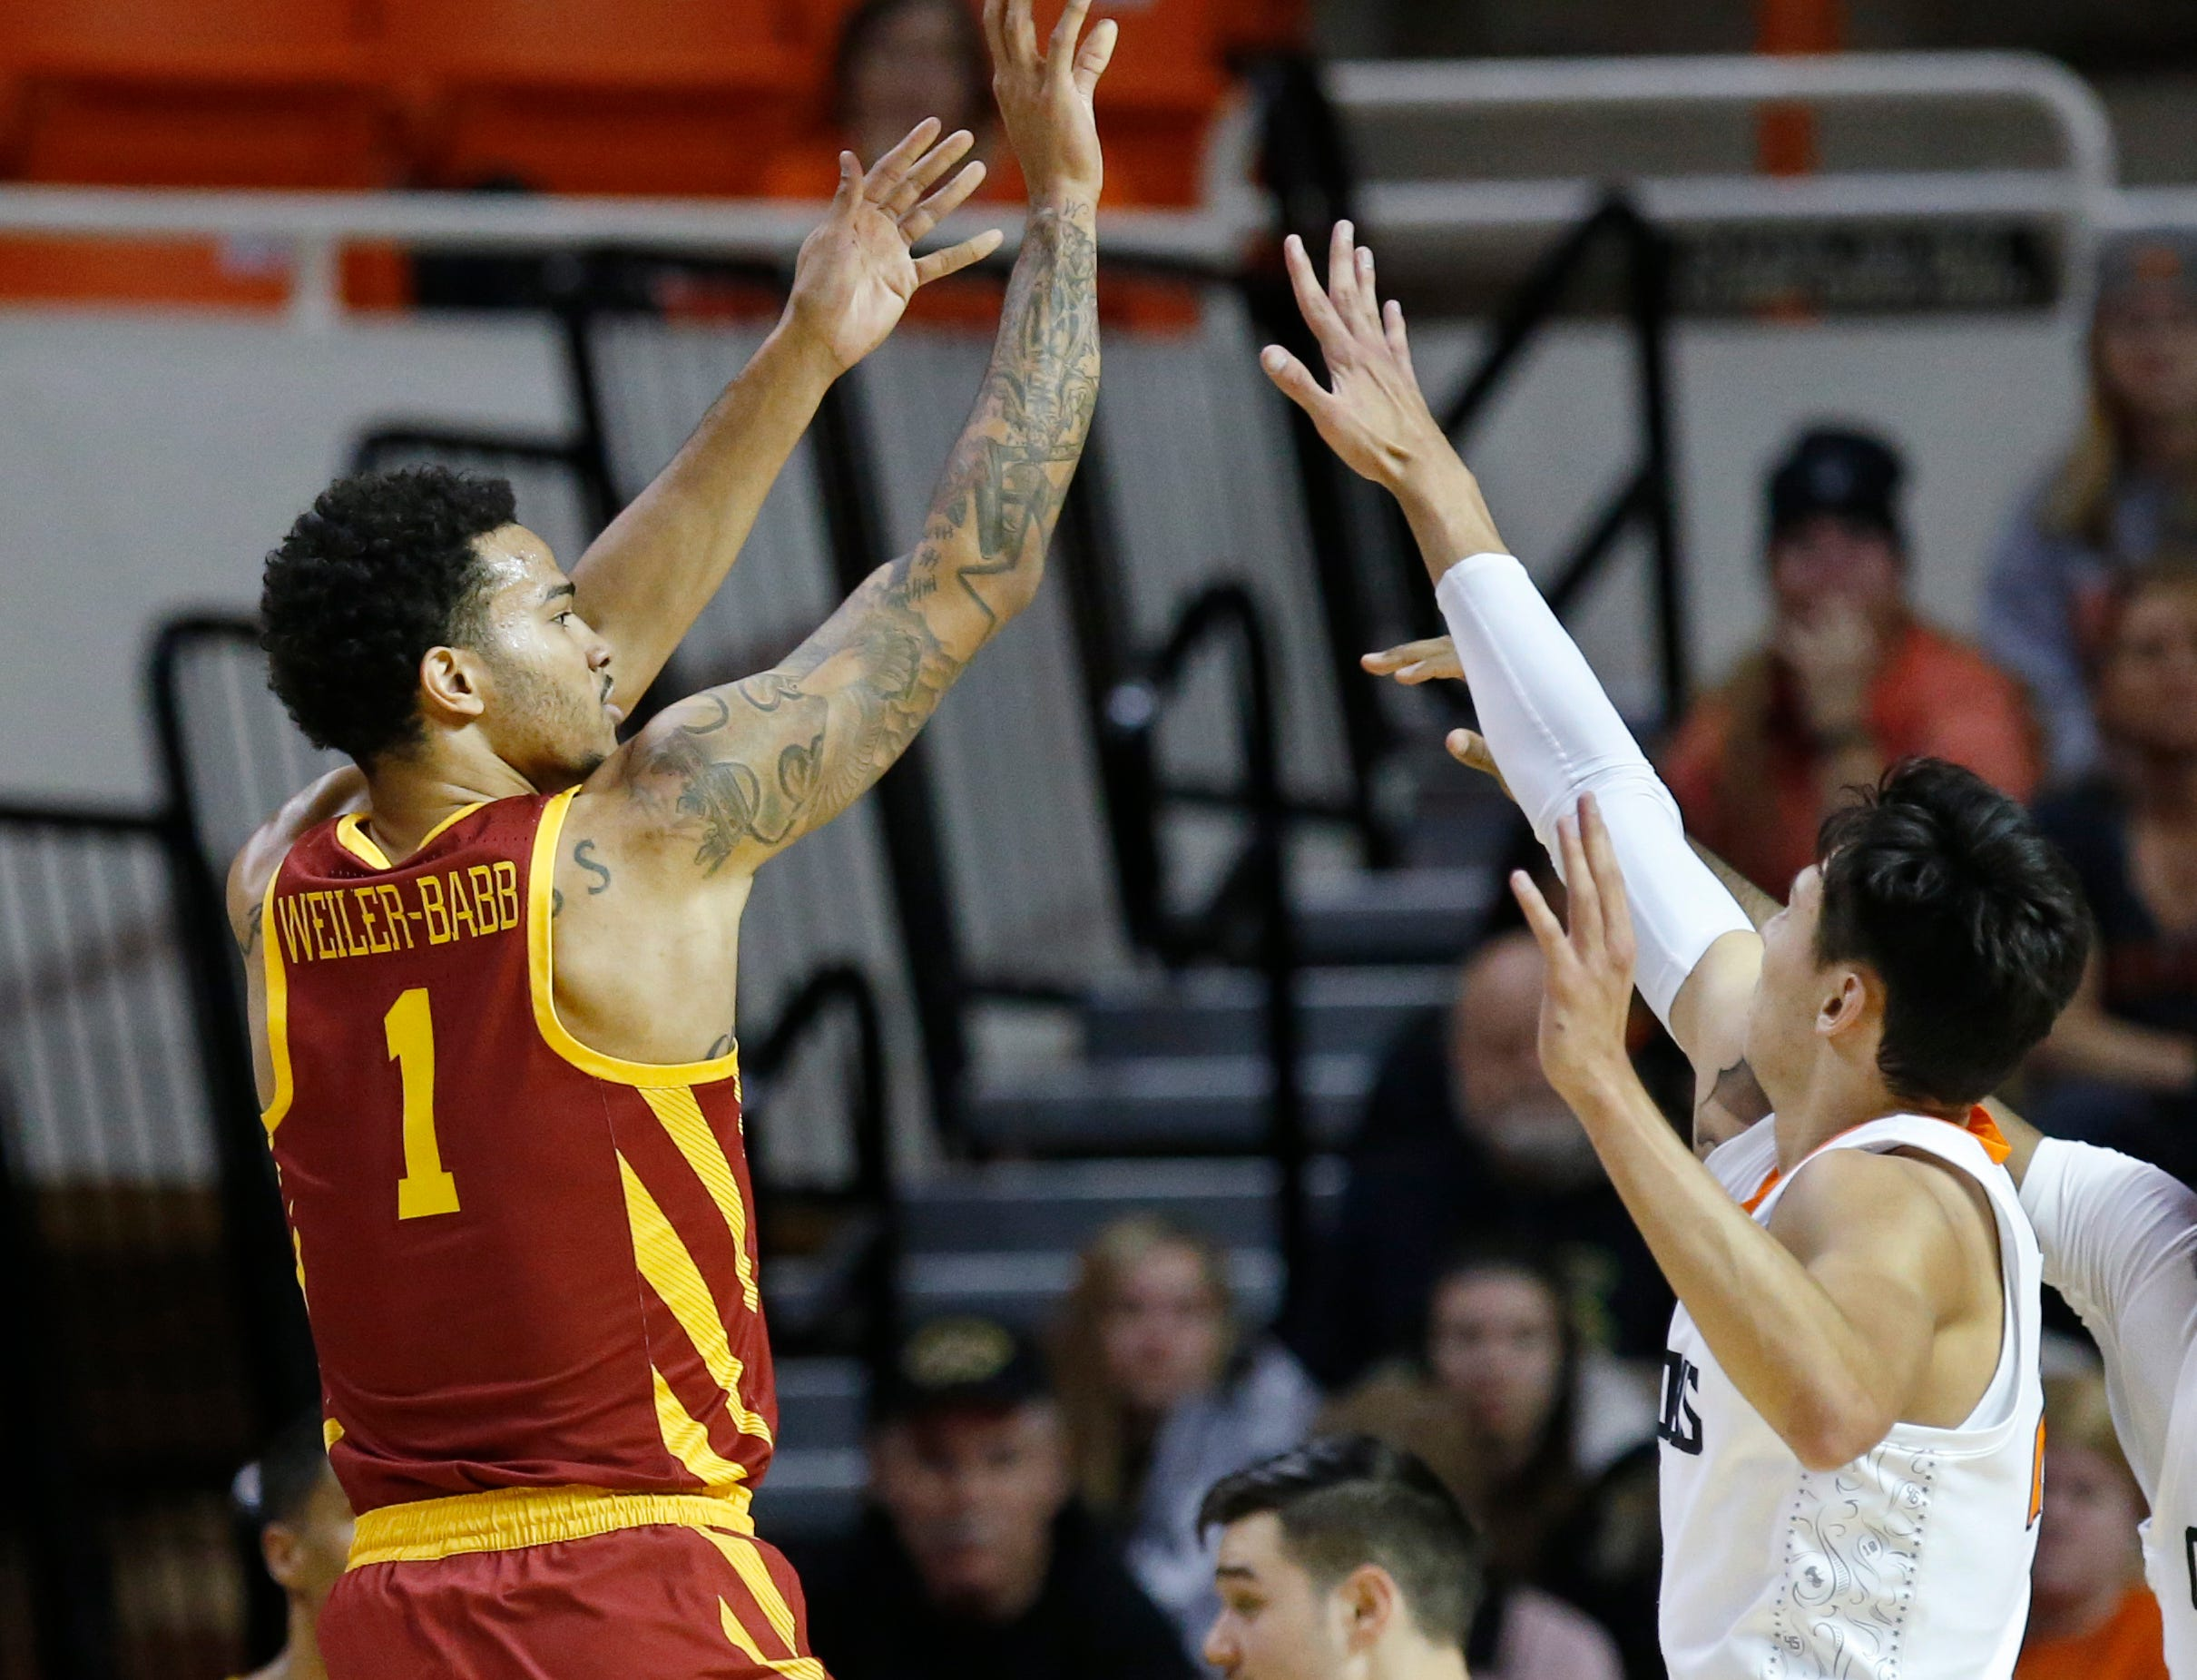 Iowa State guard Nick Weiler-Babb (1) shoots over Oklahoma State guard Lindy Waters III, right, during the first half of an NCAA college basketball game in Stillwater, Okla., Wednesday, Jan. 2, 2019. (AP Photo/Sue Ogrocki)